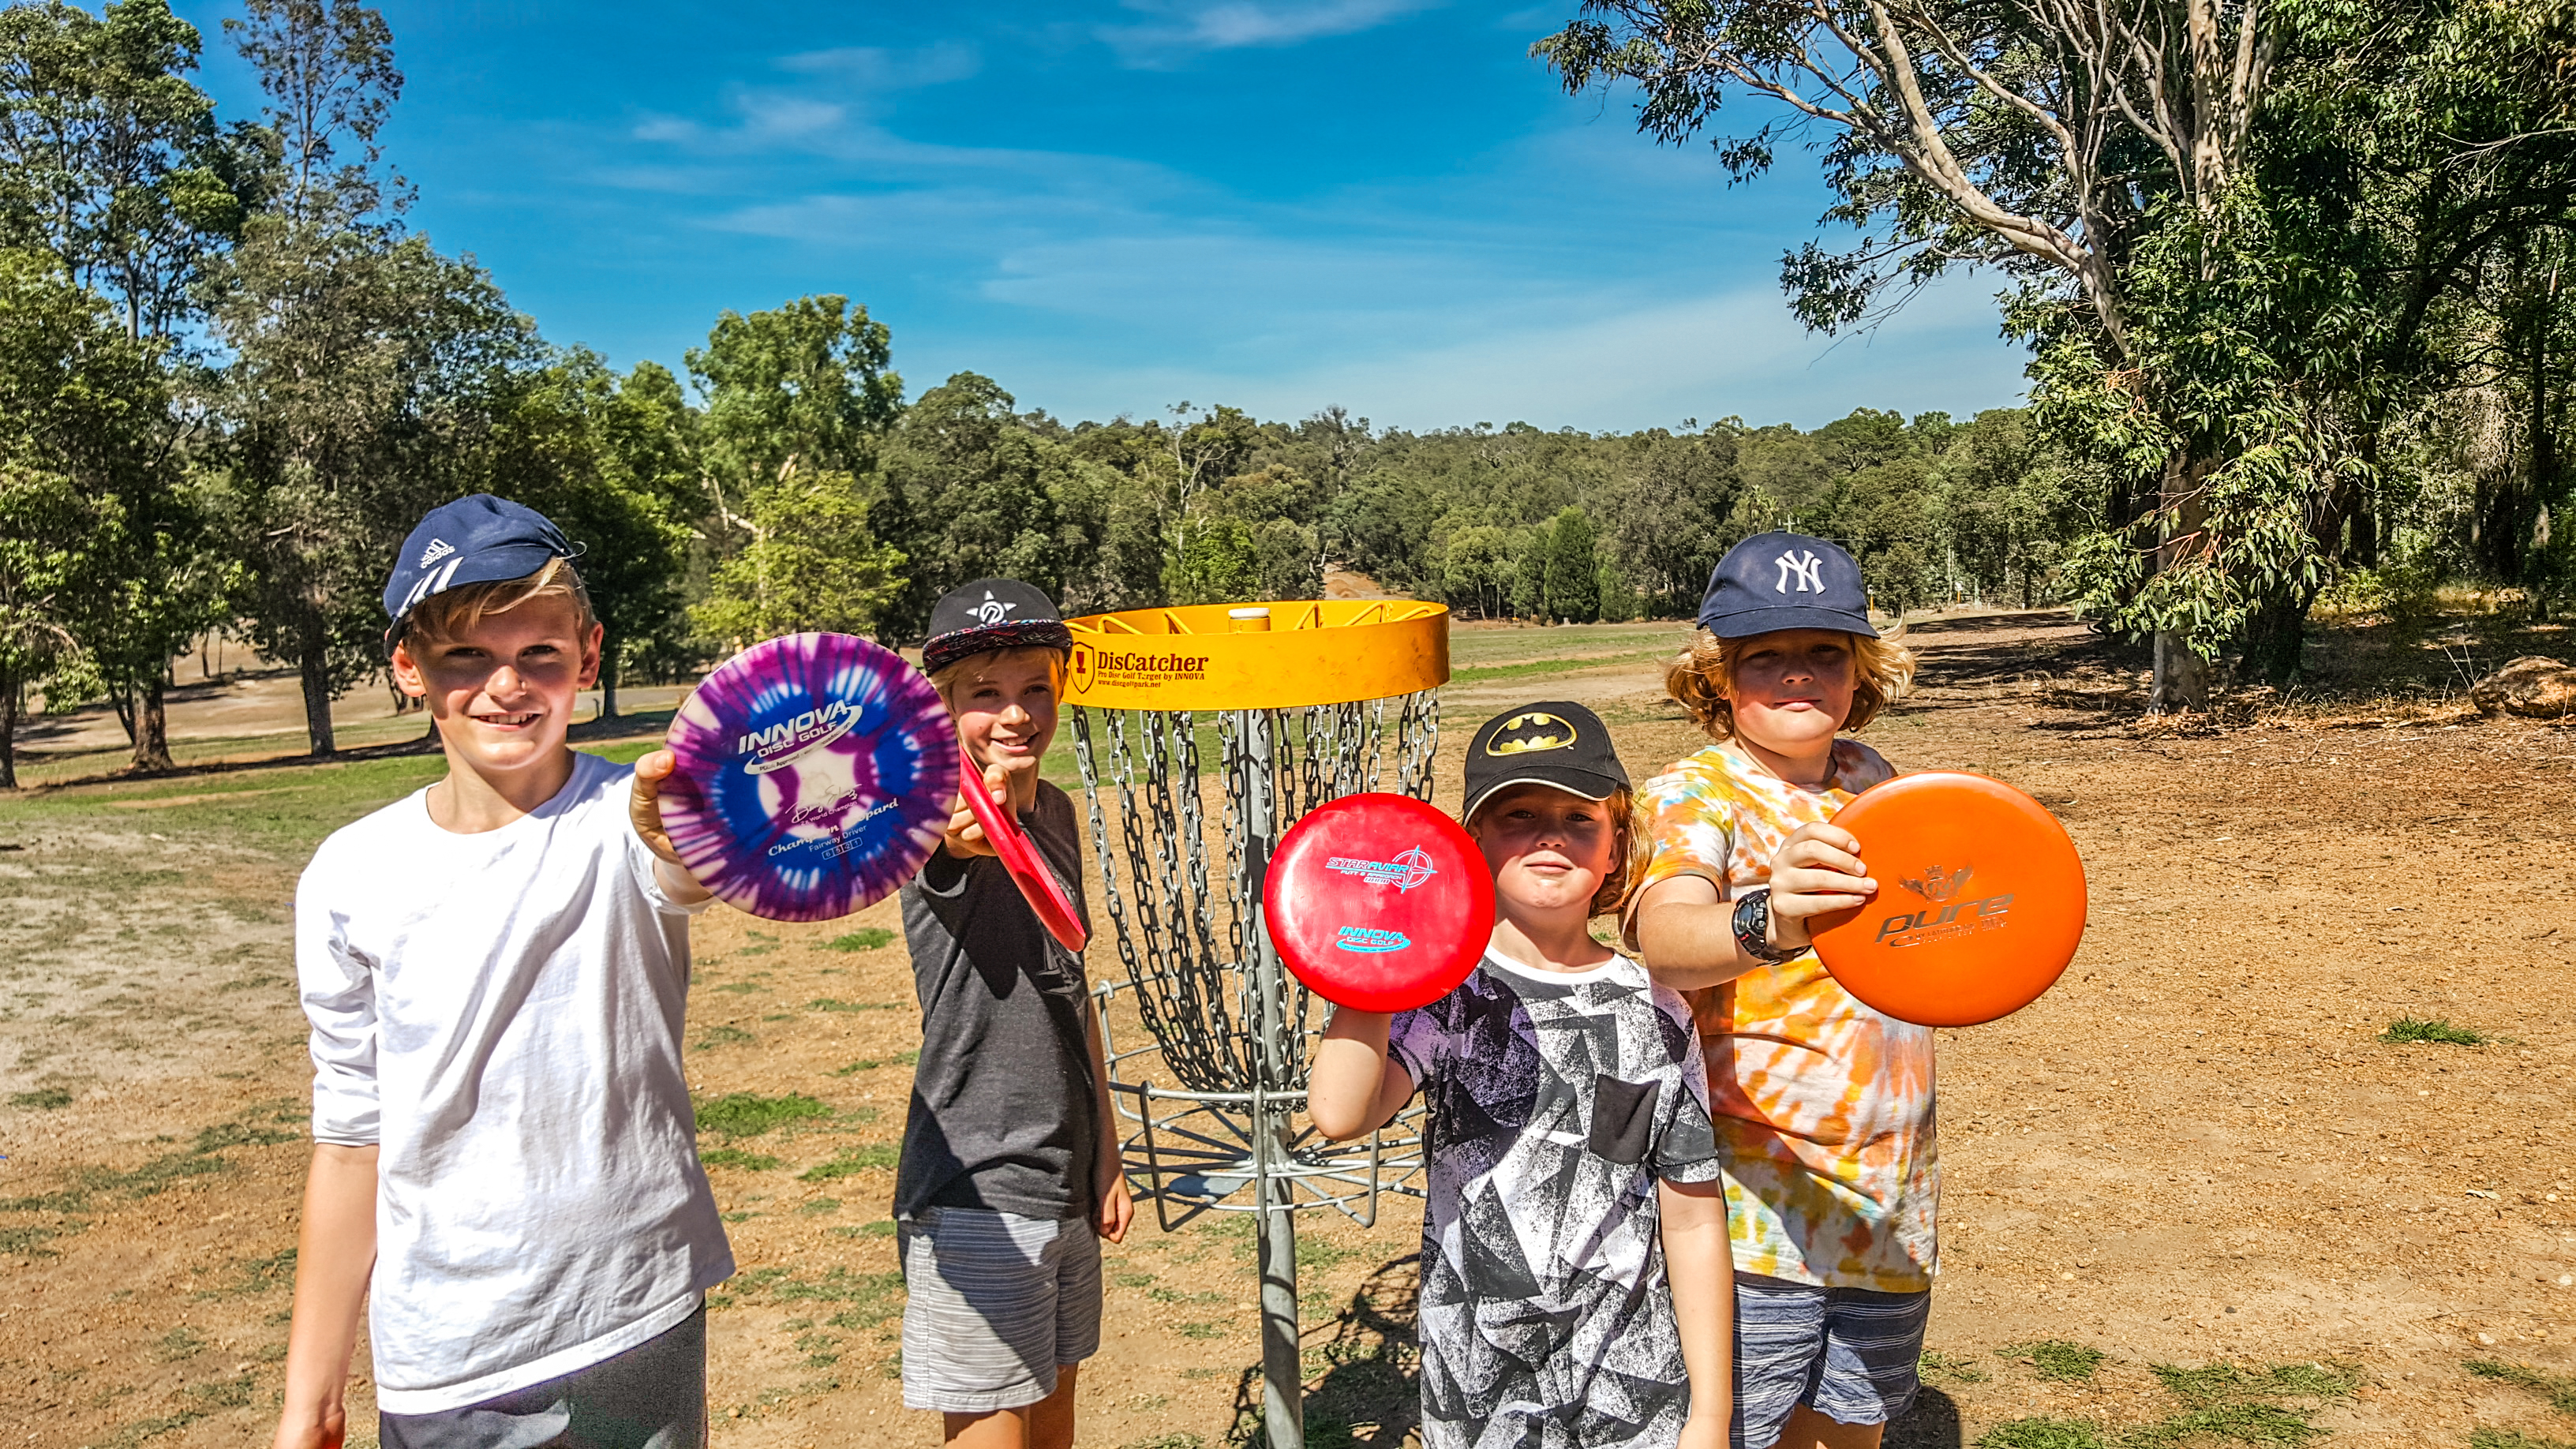 An image of group of boys holding frisbee in a disc golf park